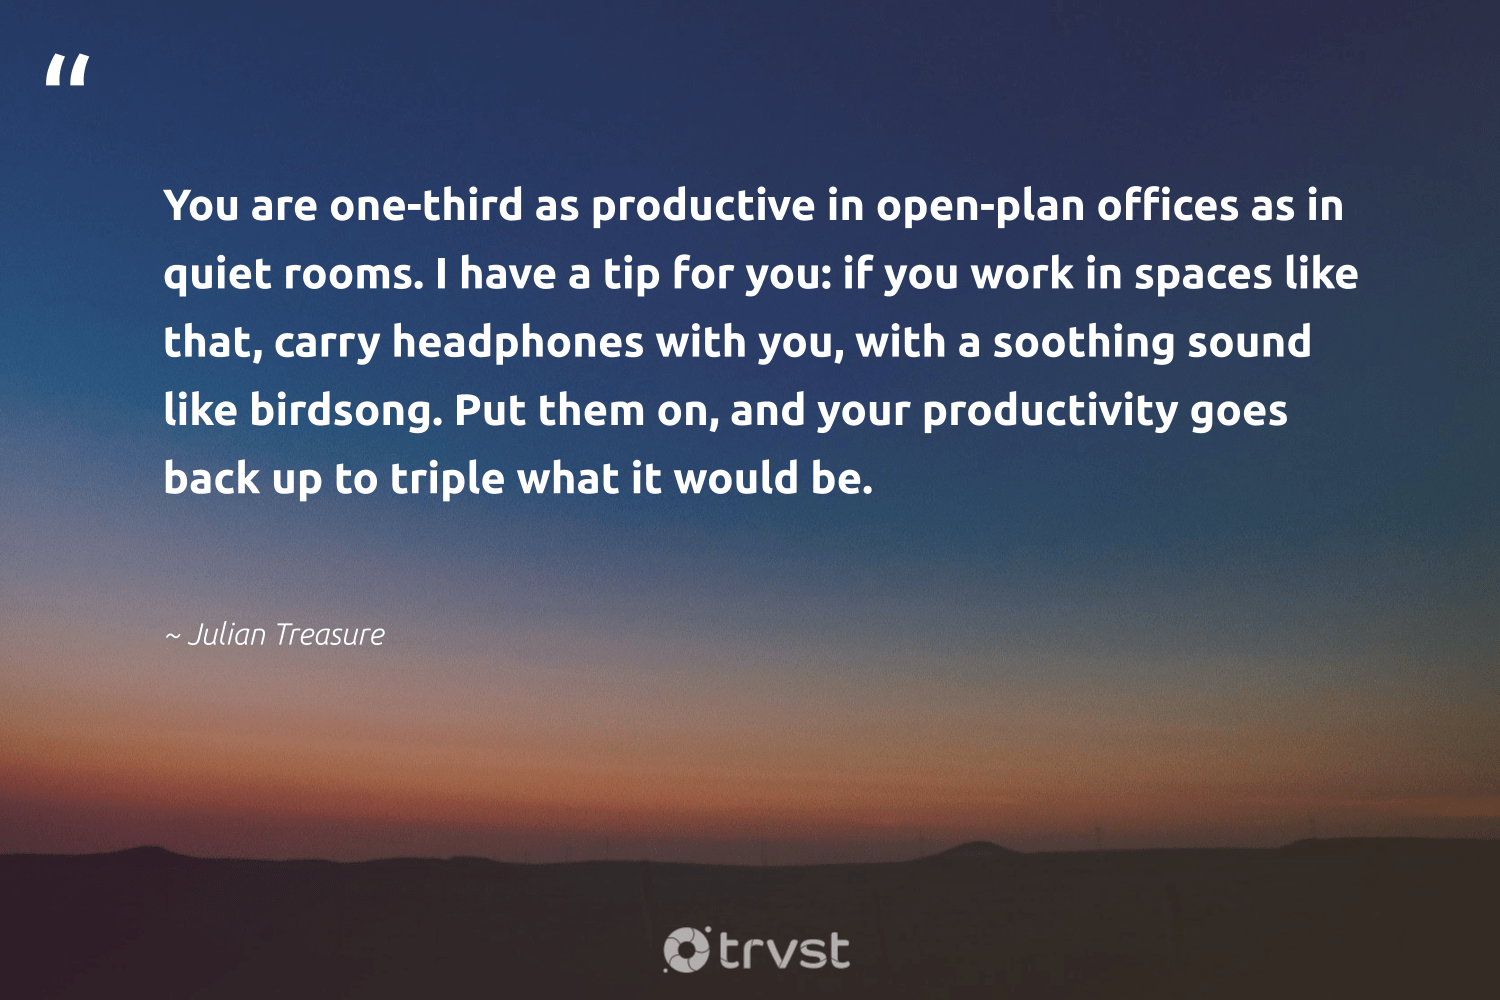 """""""You are one-third as productive in open-plan offices as in quiet rooms. I have a tip for you: if you work in spaces like that, carry headphones with you, with a soothing sound like birdsong. Put them on, and your productivity goes back up to triple what it would be.""""  - Julian Treasure #trvst #quotes #productivity #productive #motivation #timemanagement #success #nevergiveup #beinspired #mostwontiwill #goals #grow"""